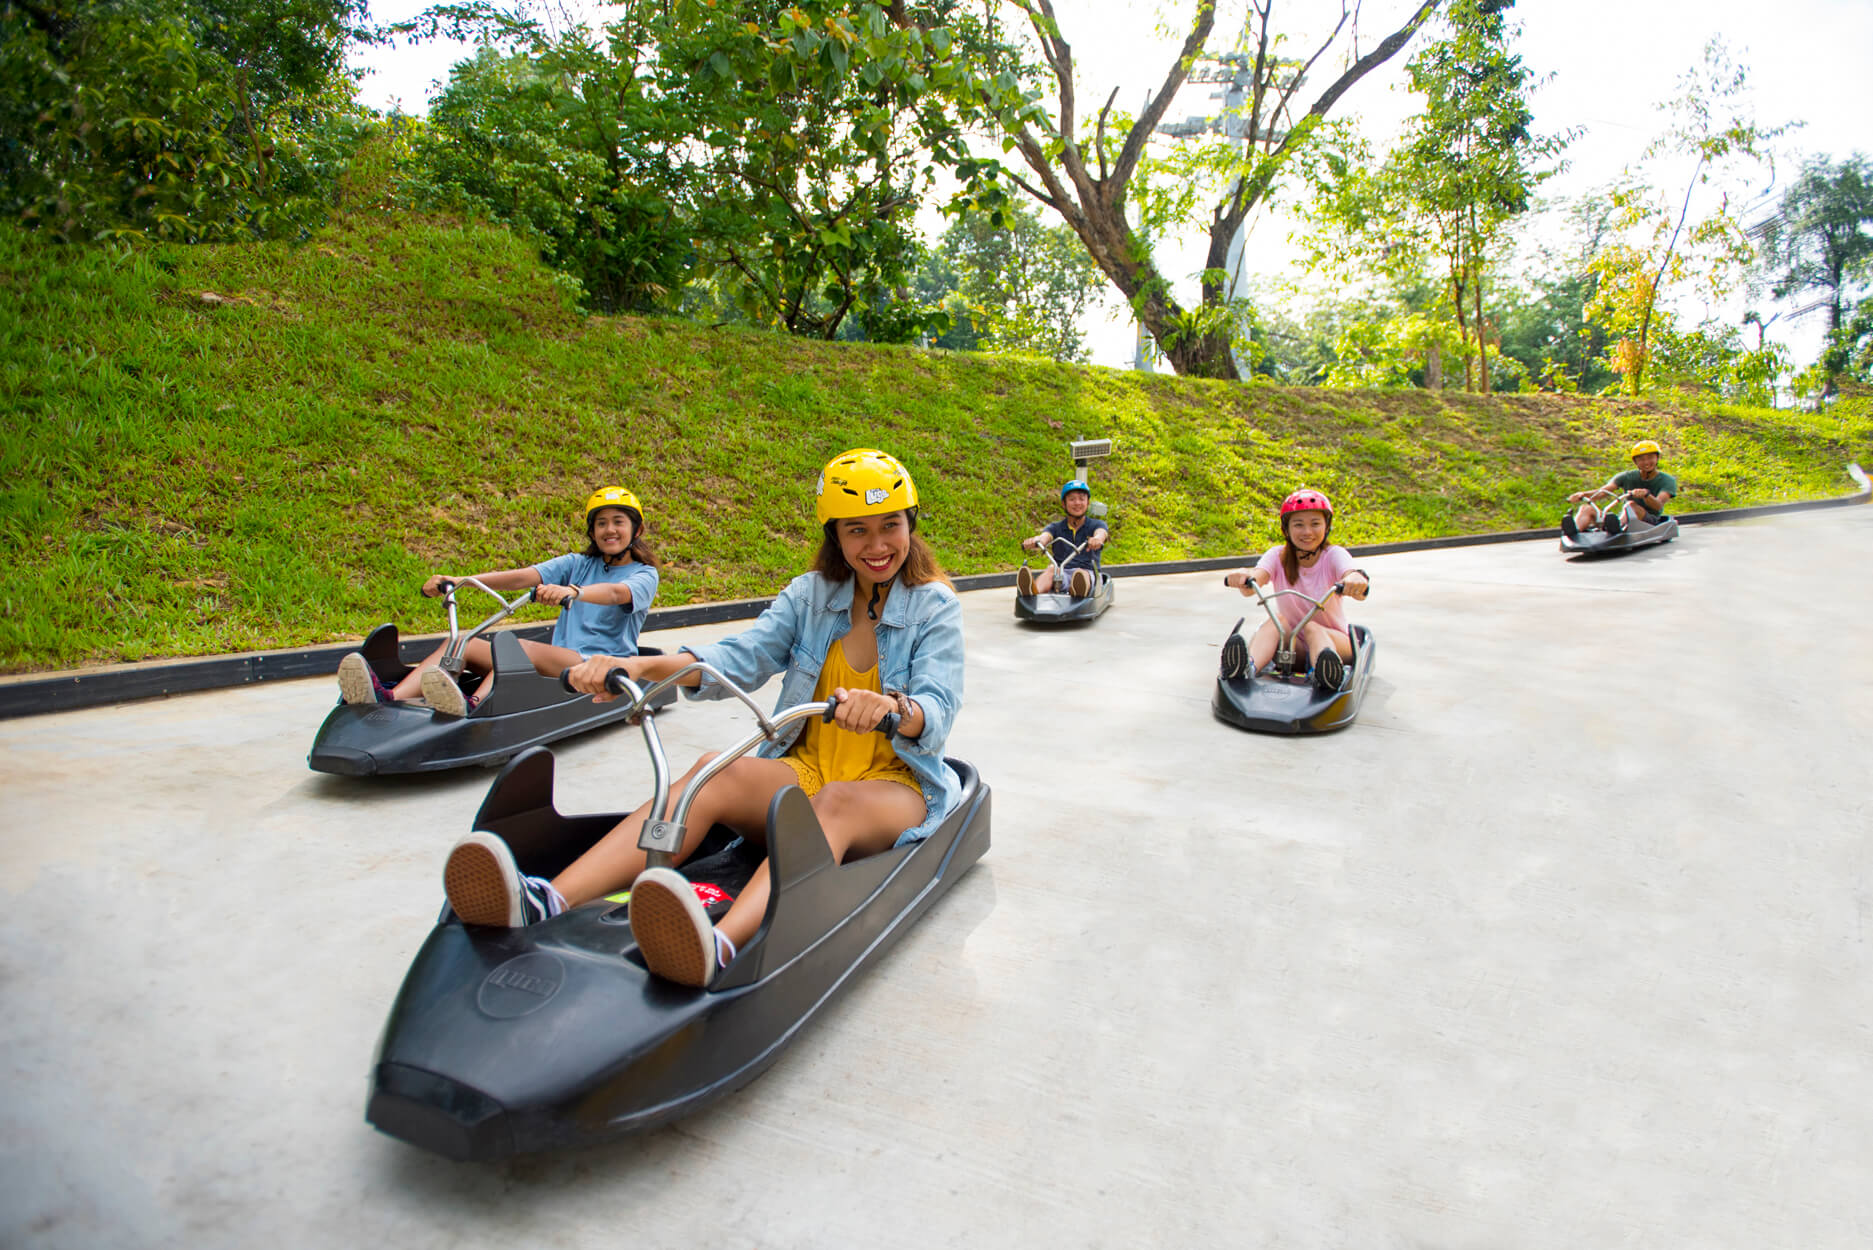 A Group Of Friends Smiling Whilst Riding Their Luge Down The Track at Skyline Luge Sentosa.